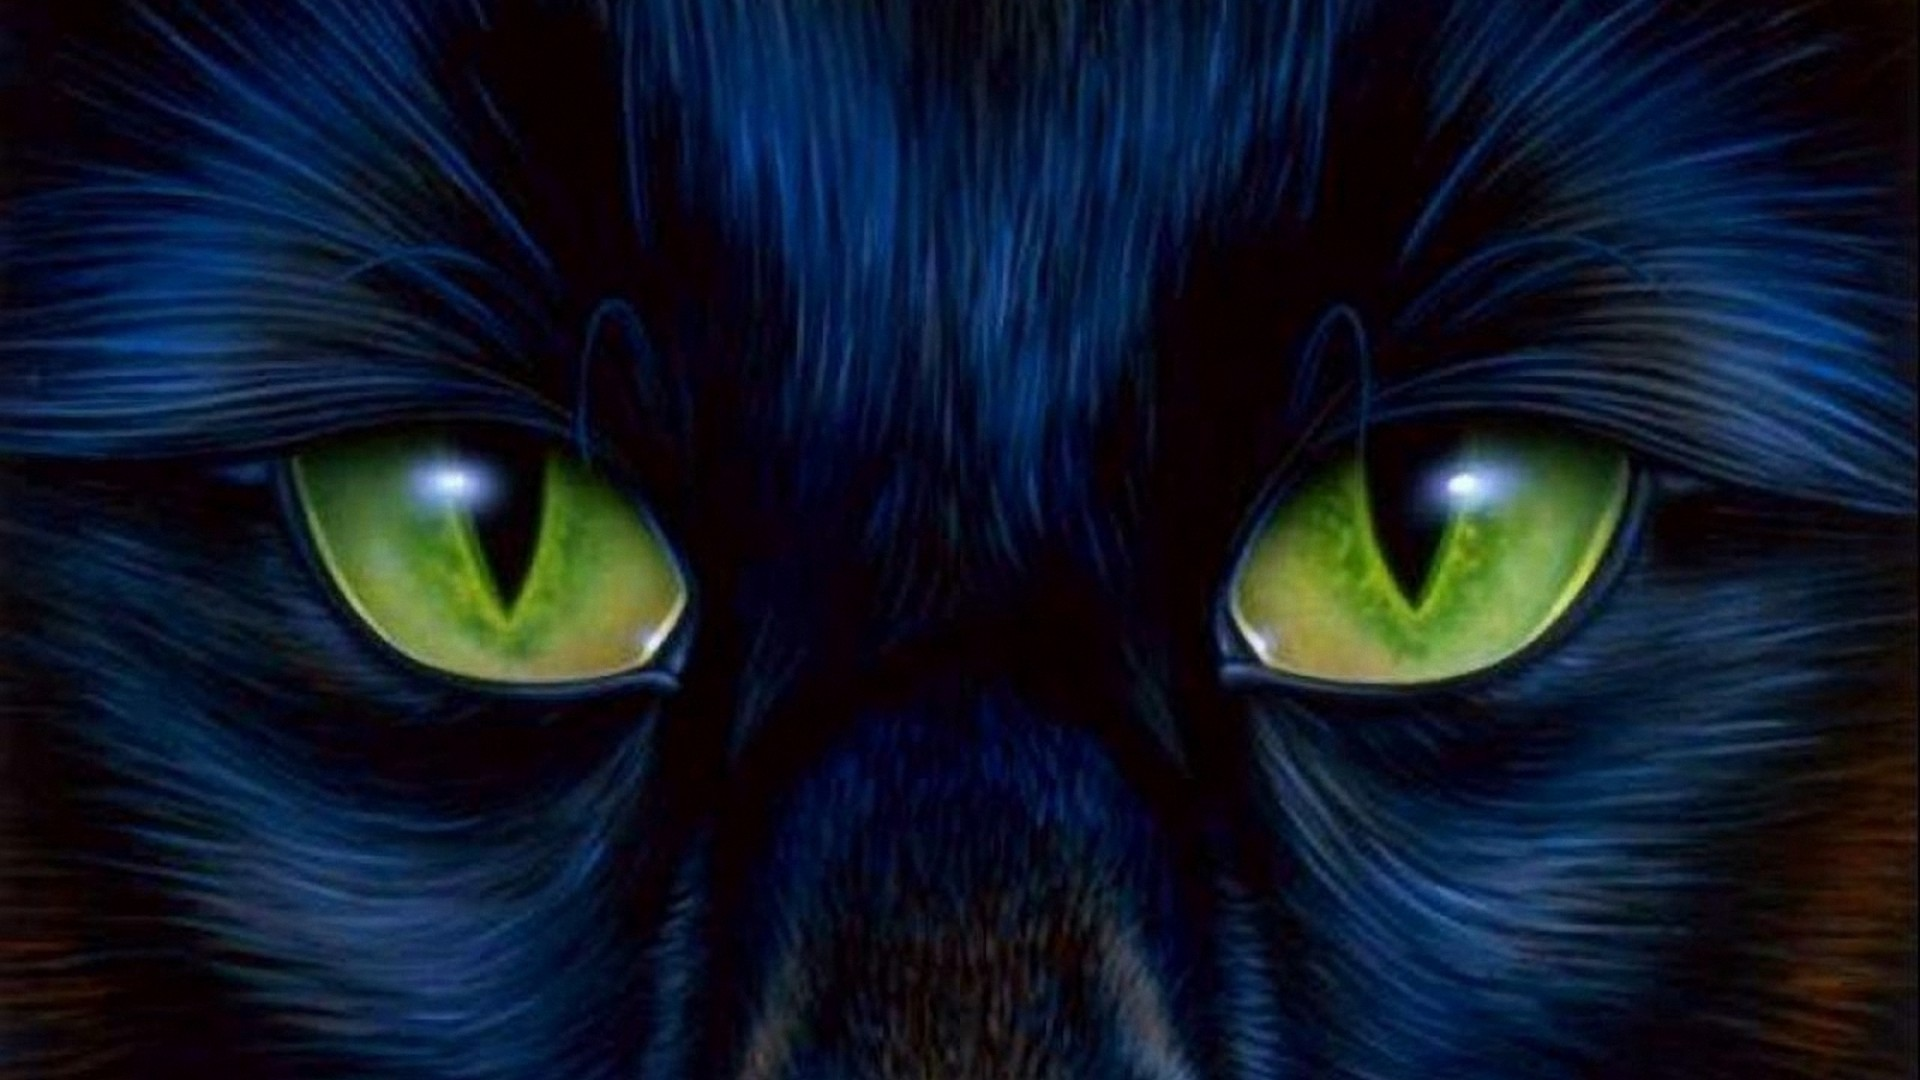 Green Cats Eyes Hd Wallpapers